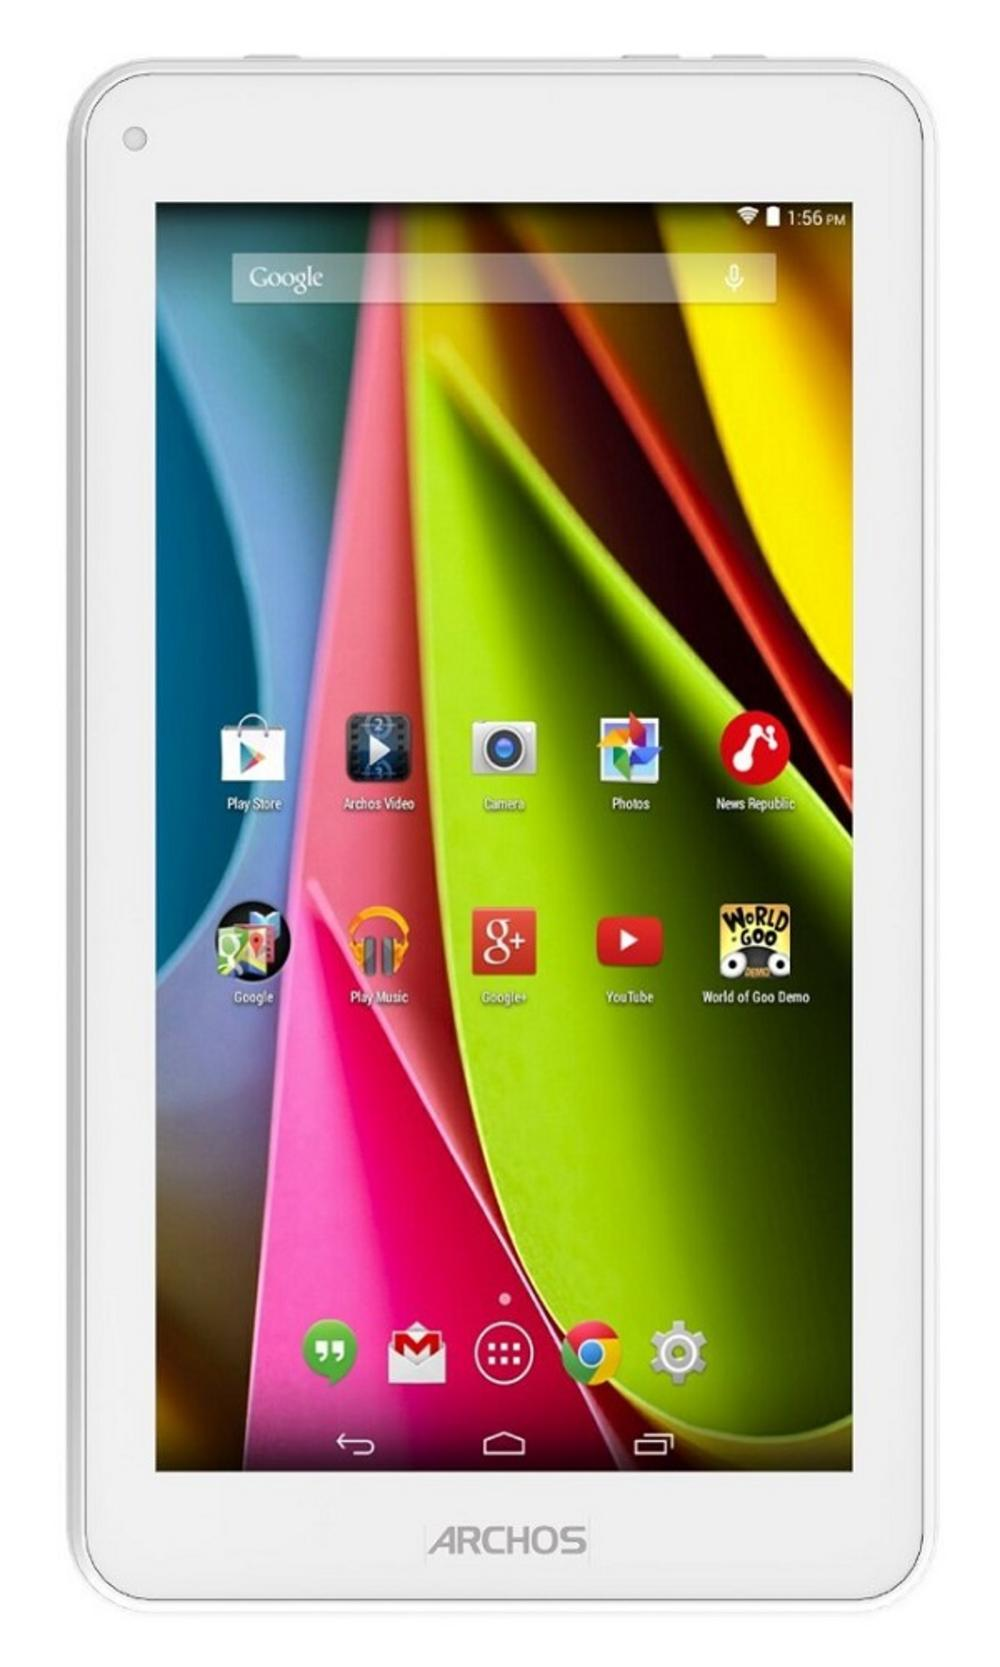 Archos 70c Cobalt 7 inch Internet Tablet 8GB Memory WiFi Android 4.4 - White